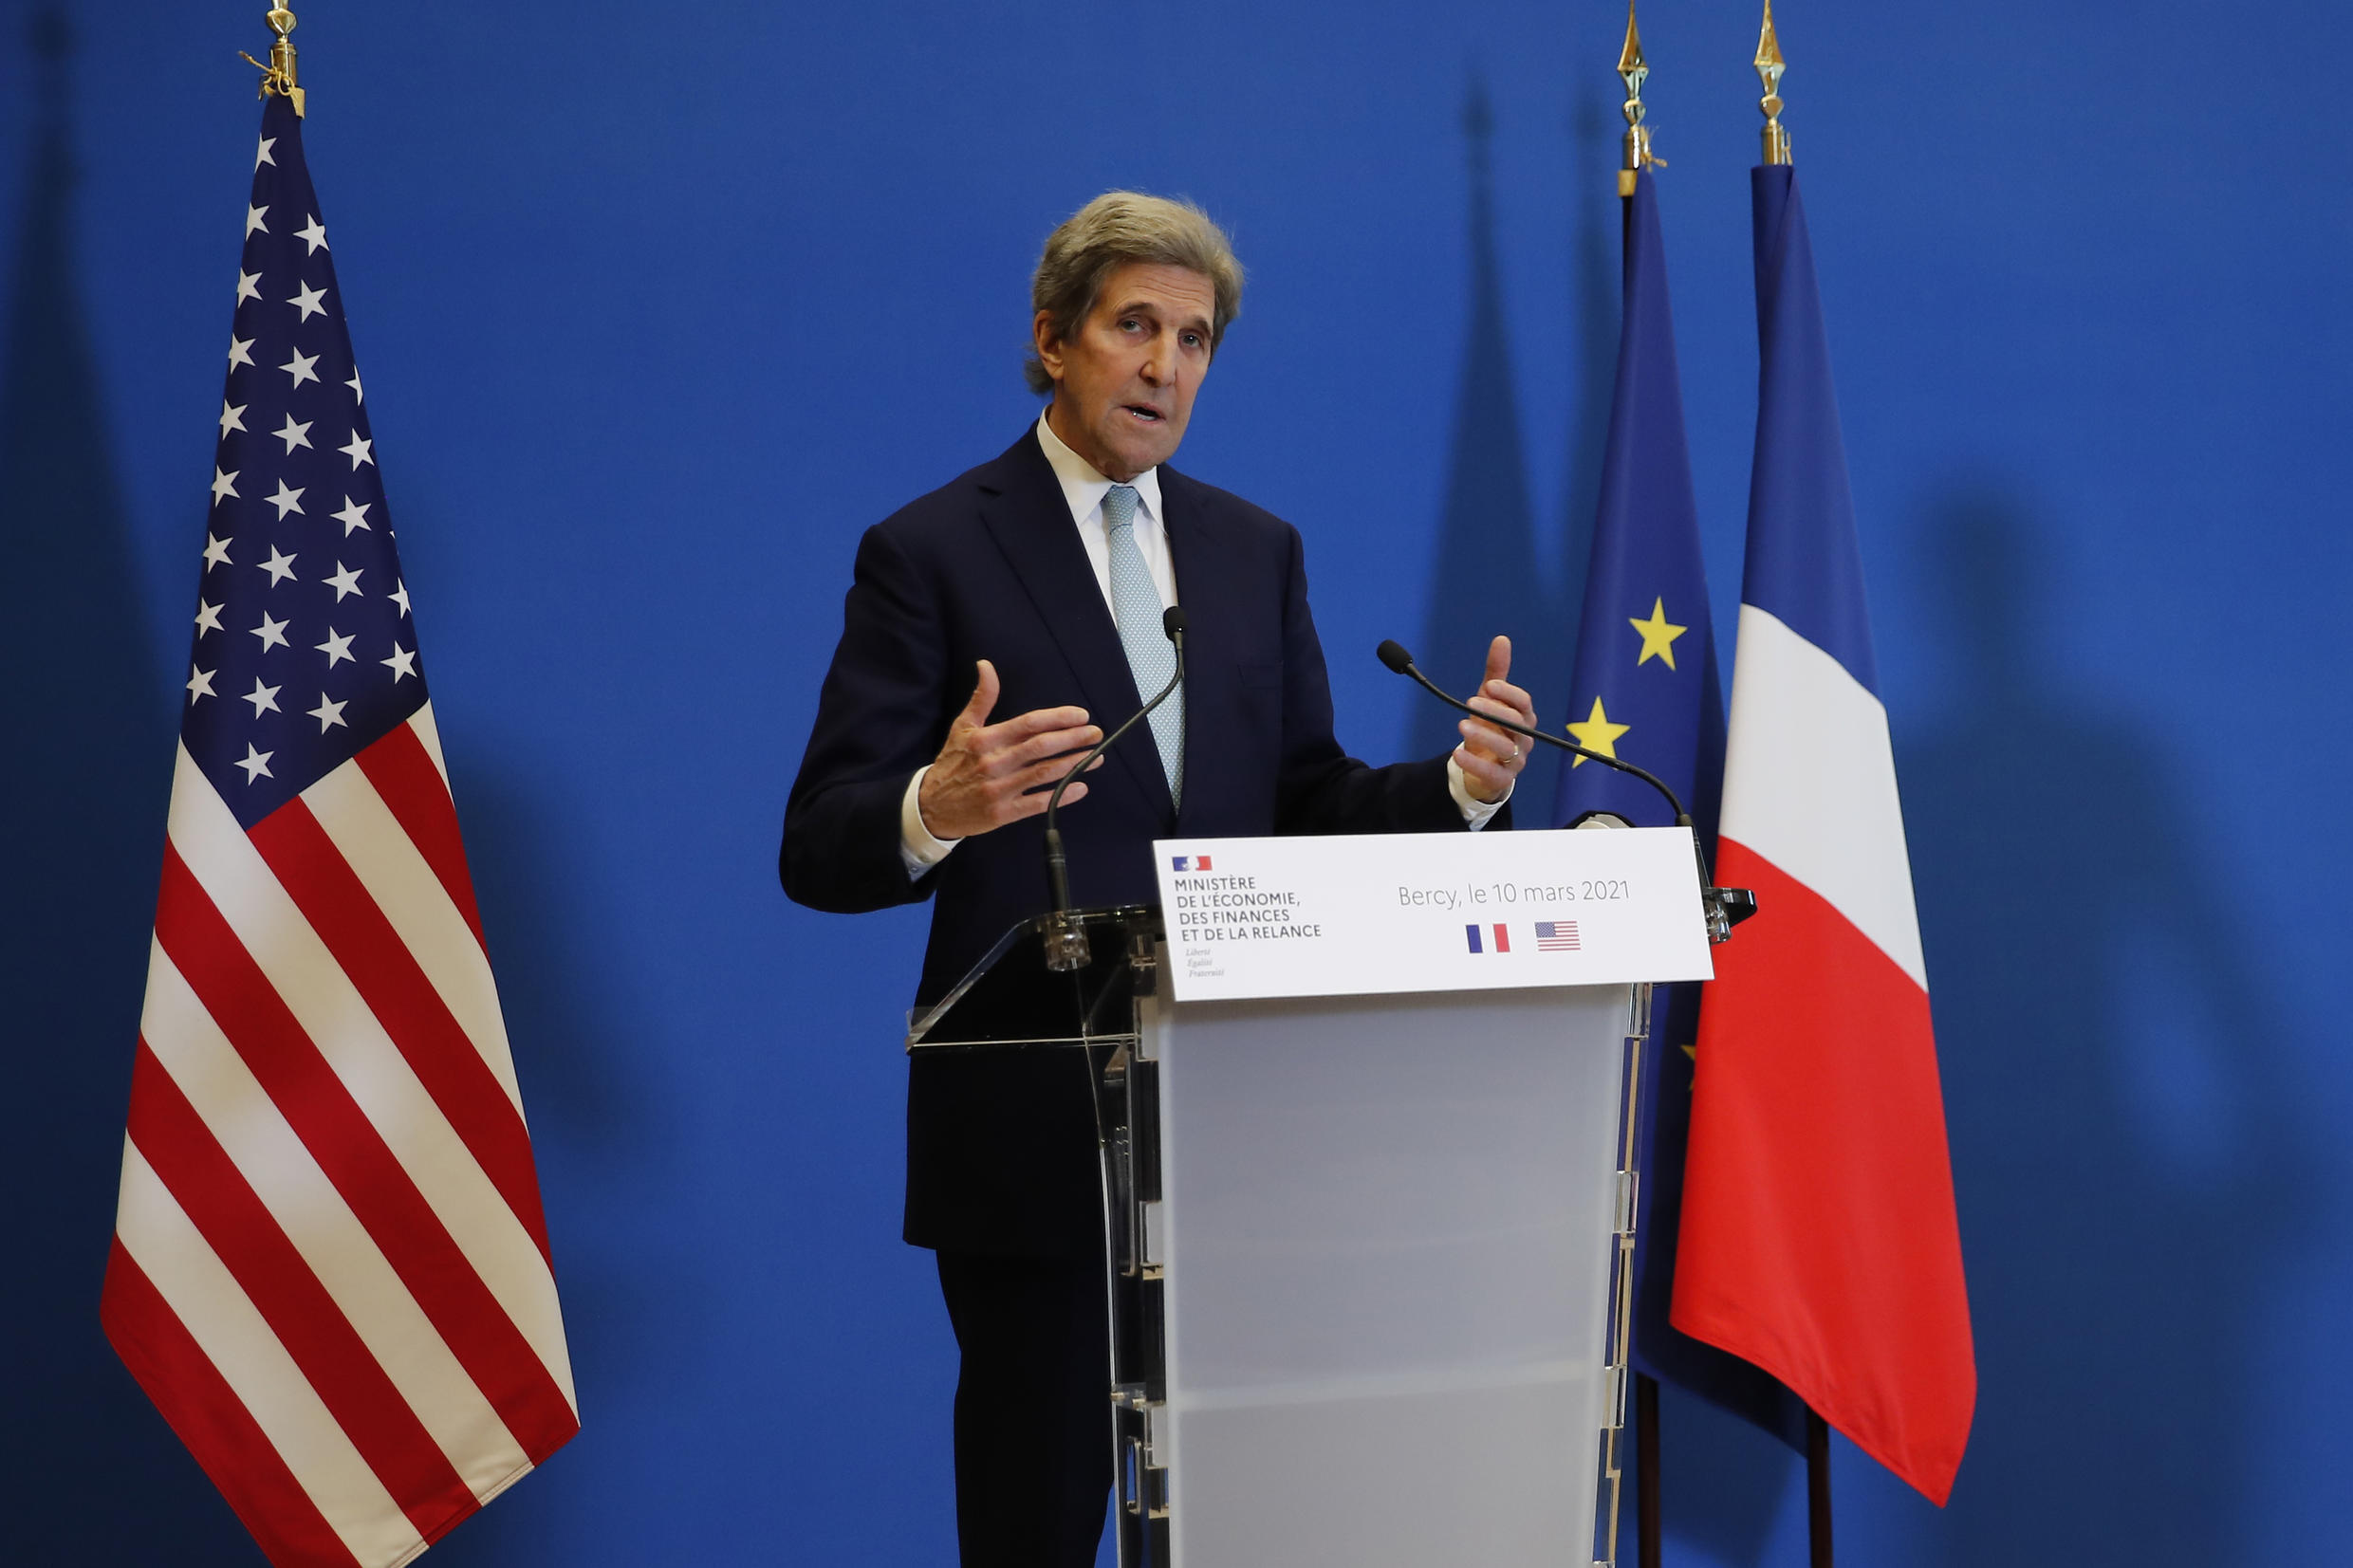 United States Special Presidential Envoy for Climate John Kerry speaks during a joint press conference with French Economy and Finance minister Bruno Le Maire, Wednesday, March 10, 2021 in Paris. On Tuesday, John Kerry traveled to Brussels to relaunch transatlantic cooperation with European officials in the wake of President Joe Biden's decision to rejoin the global effort to curb climate change.